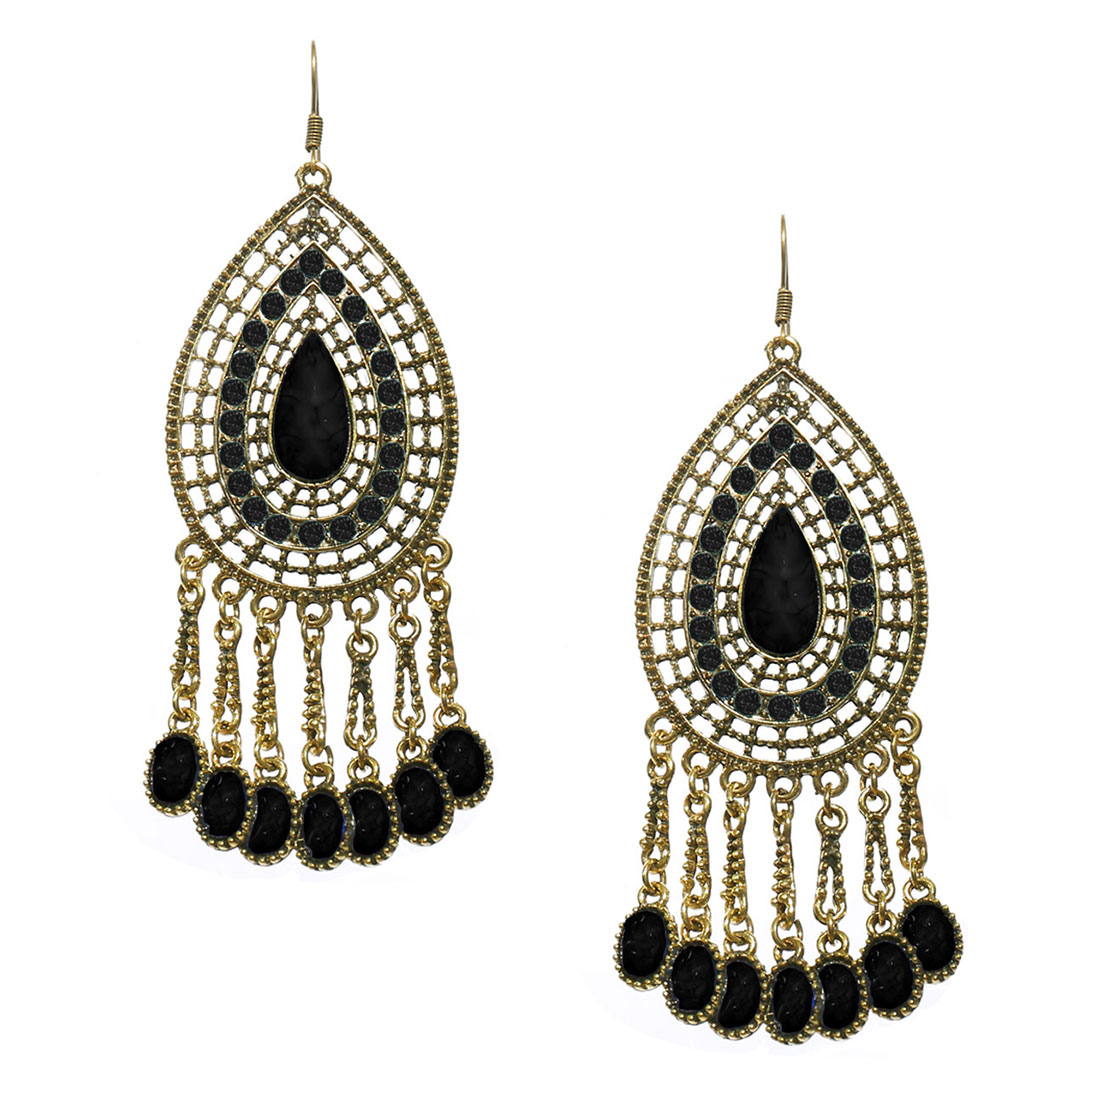 Women Retro Black Waterdrop Shaped Crystal Resin Drop Dangle Hook Earring Ear Stud